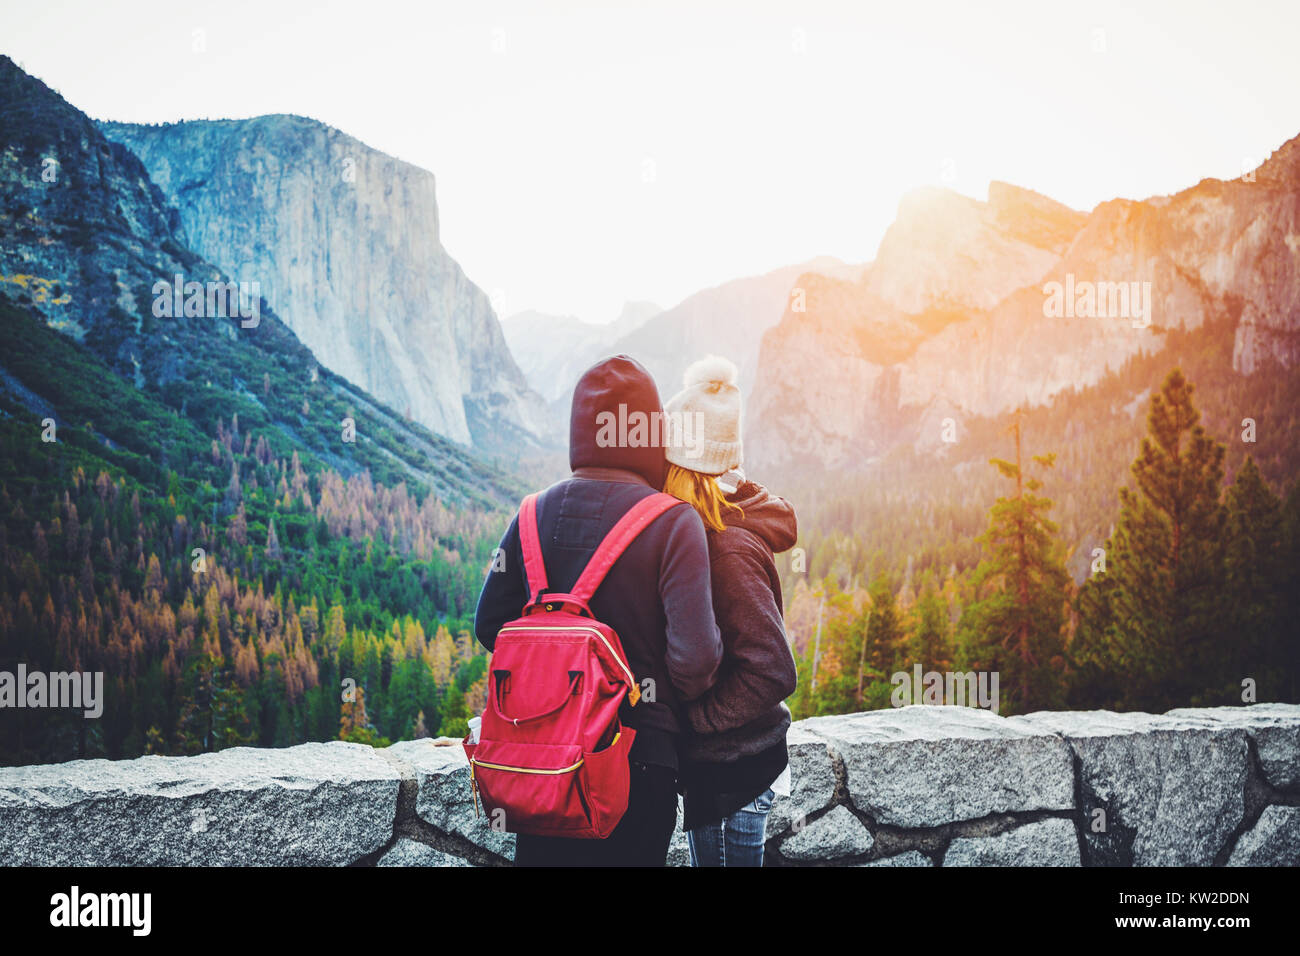 Romantic view of a young couple enjoying famous Tunnel View in beautiful golden morning light at sunrise in Yosemite - Stock Image